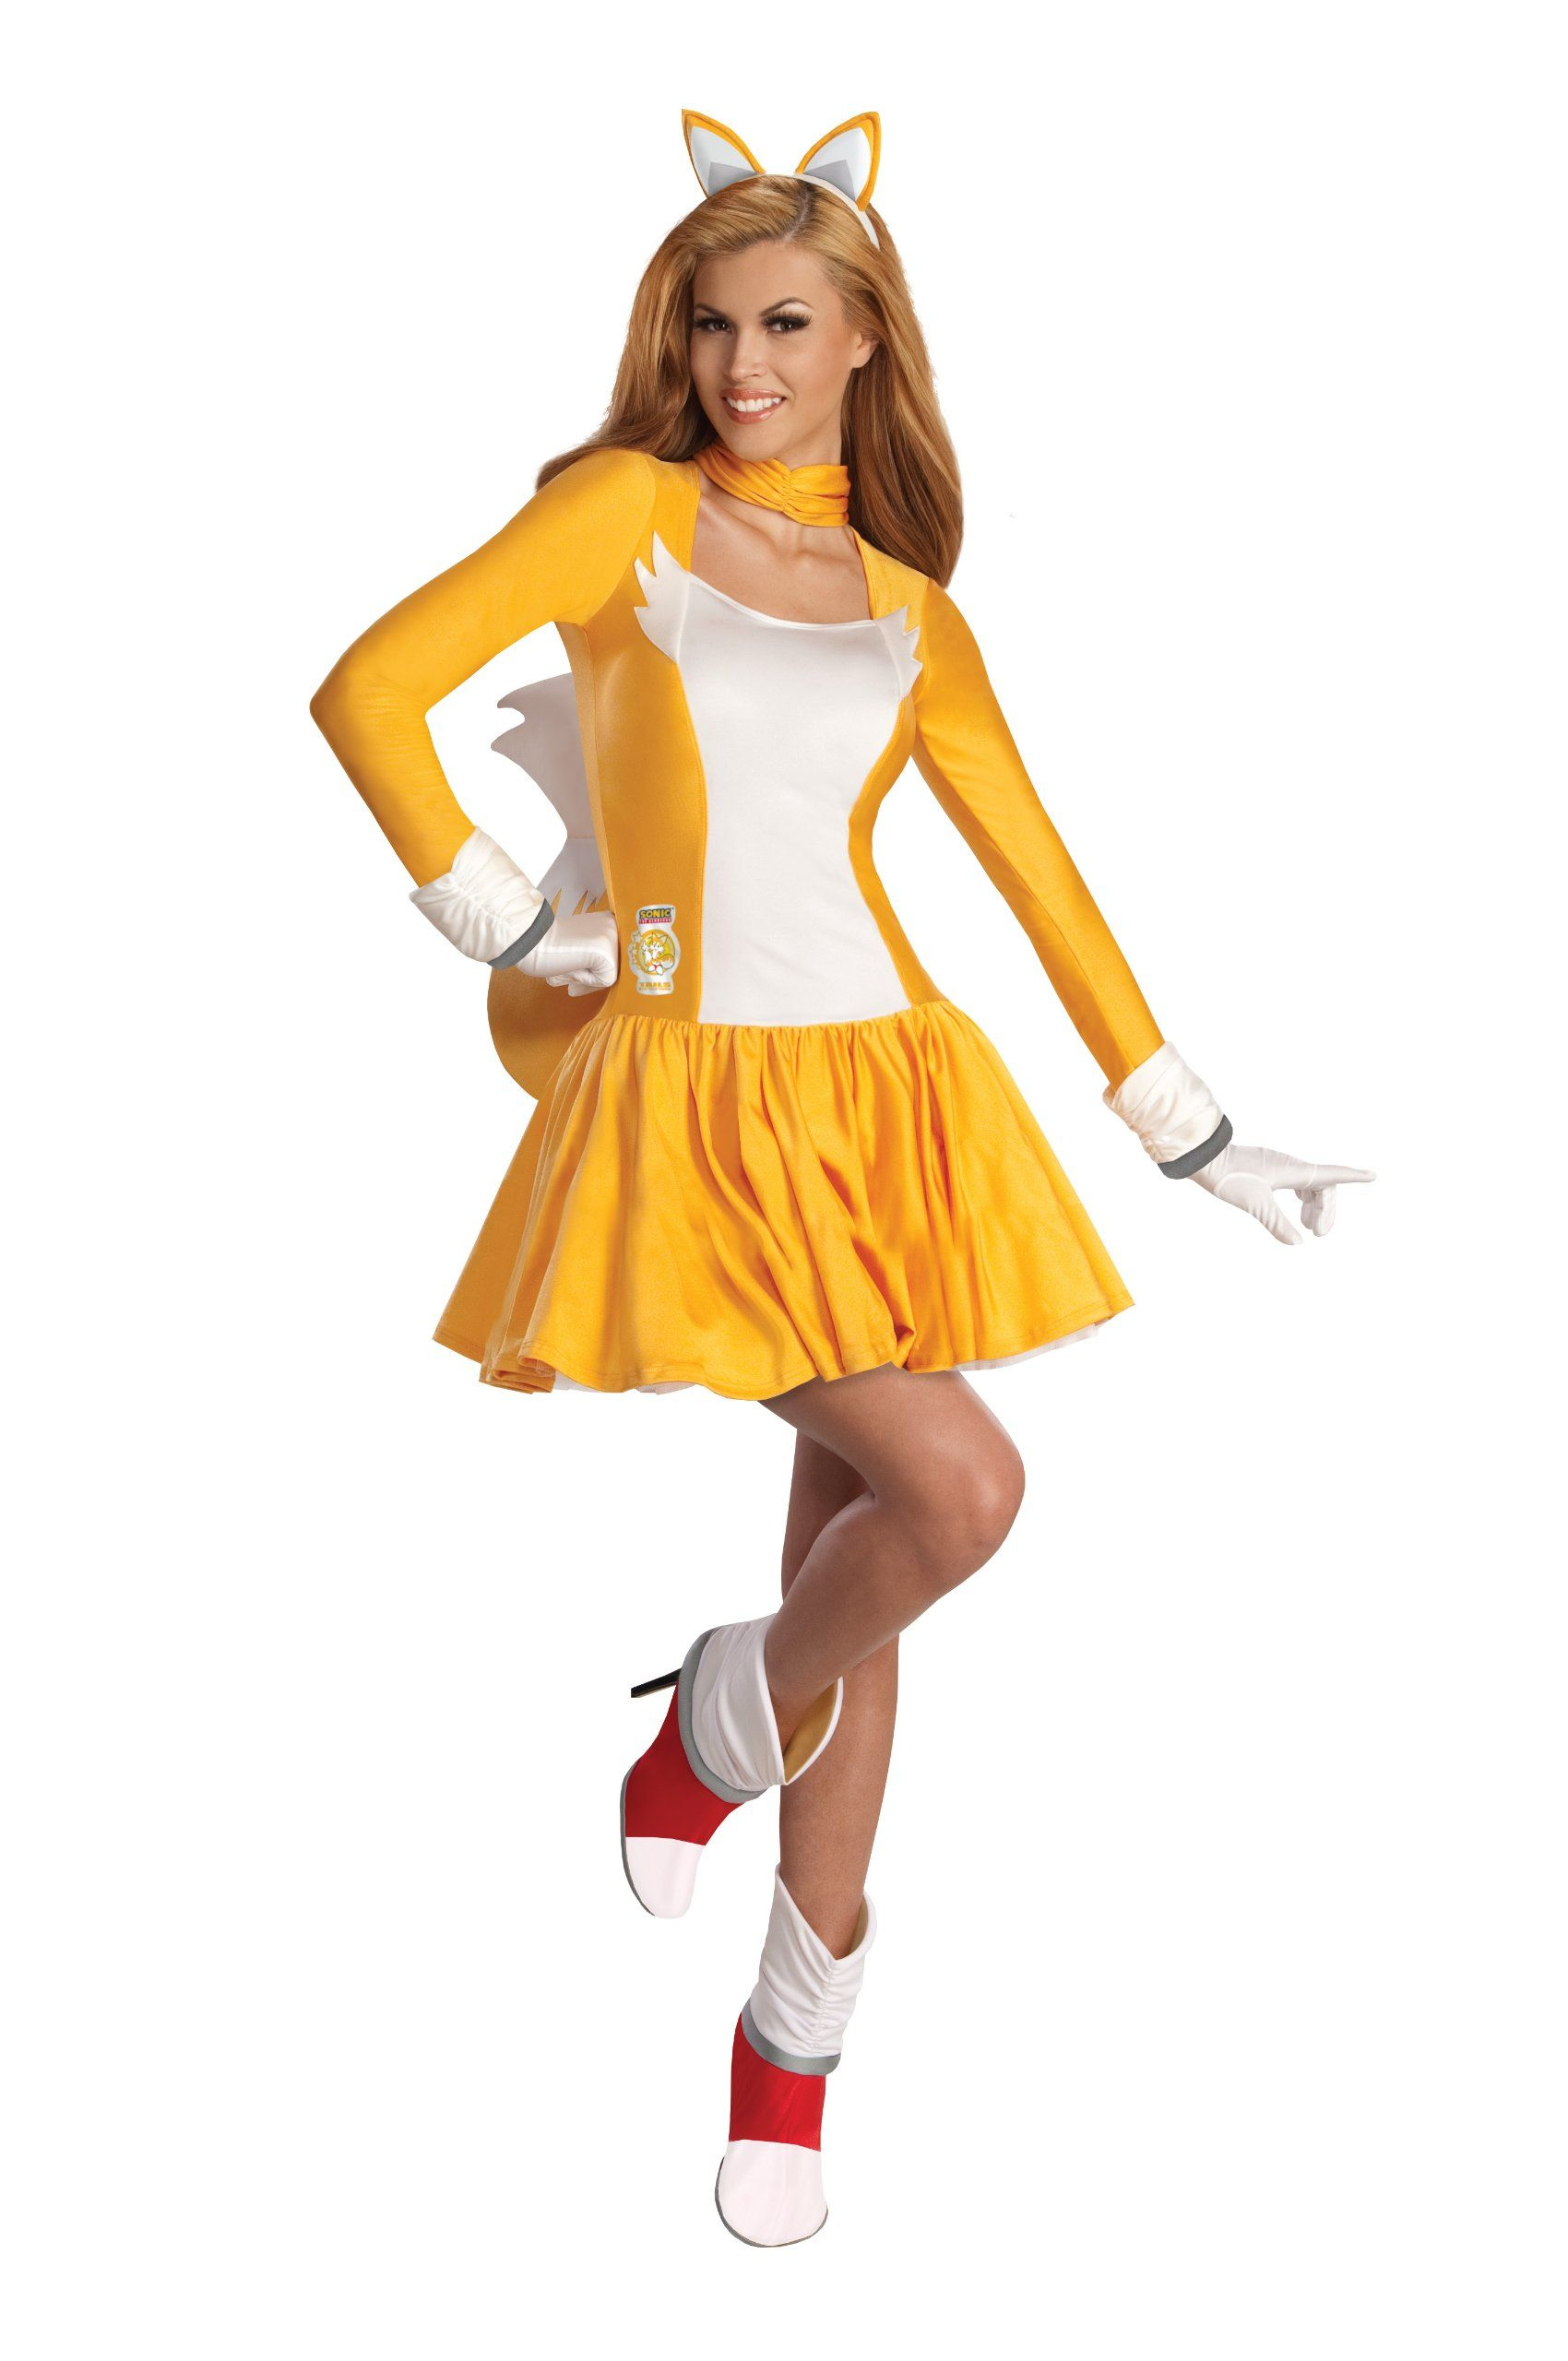 amazoncom rubies costume sonic the hedgehog adult tails dress and accessories clothing - Accessories For Halloween Costumes